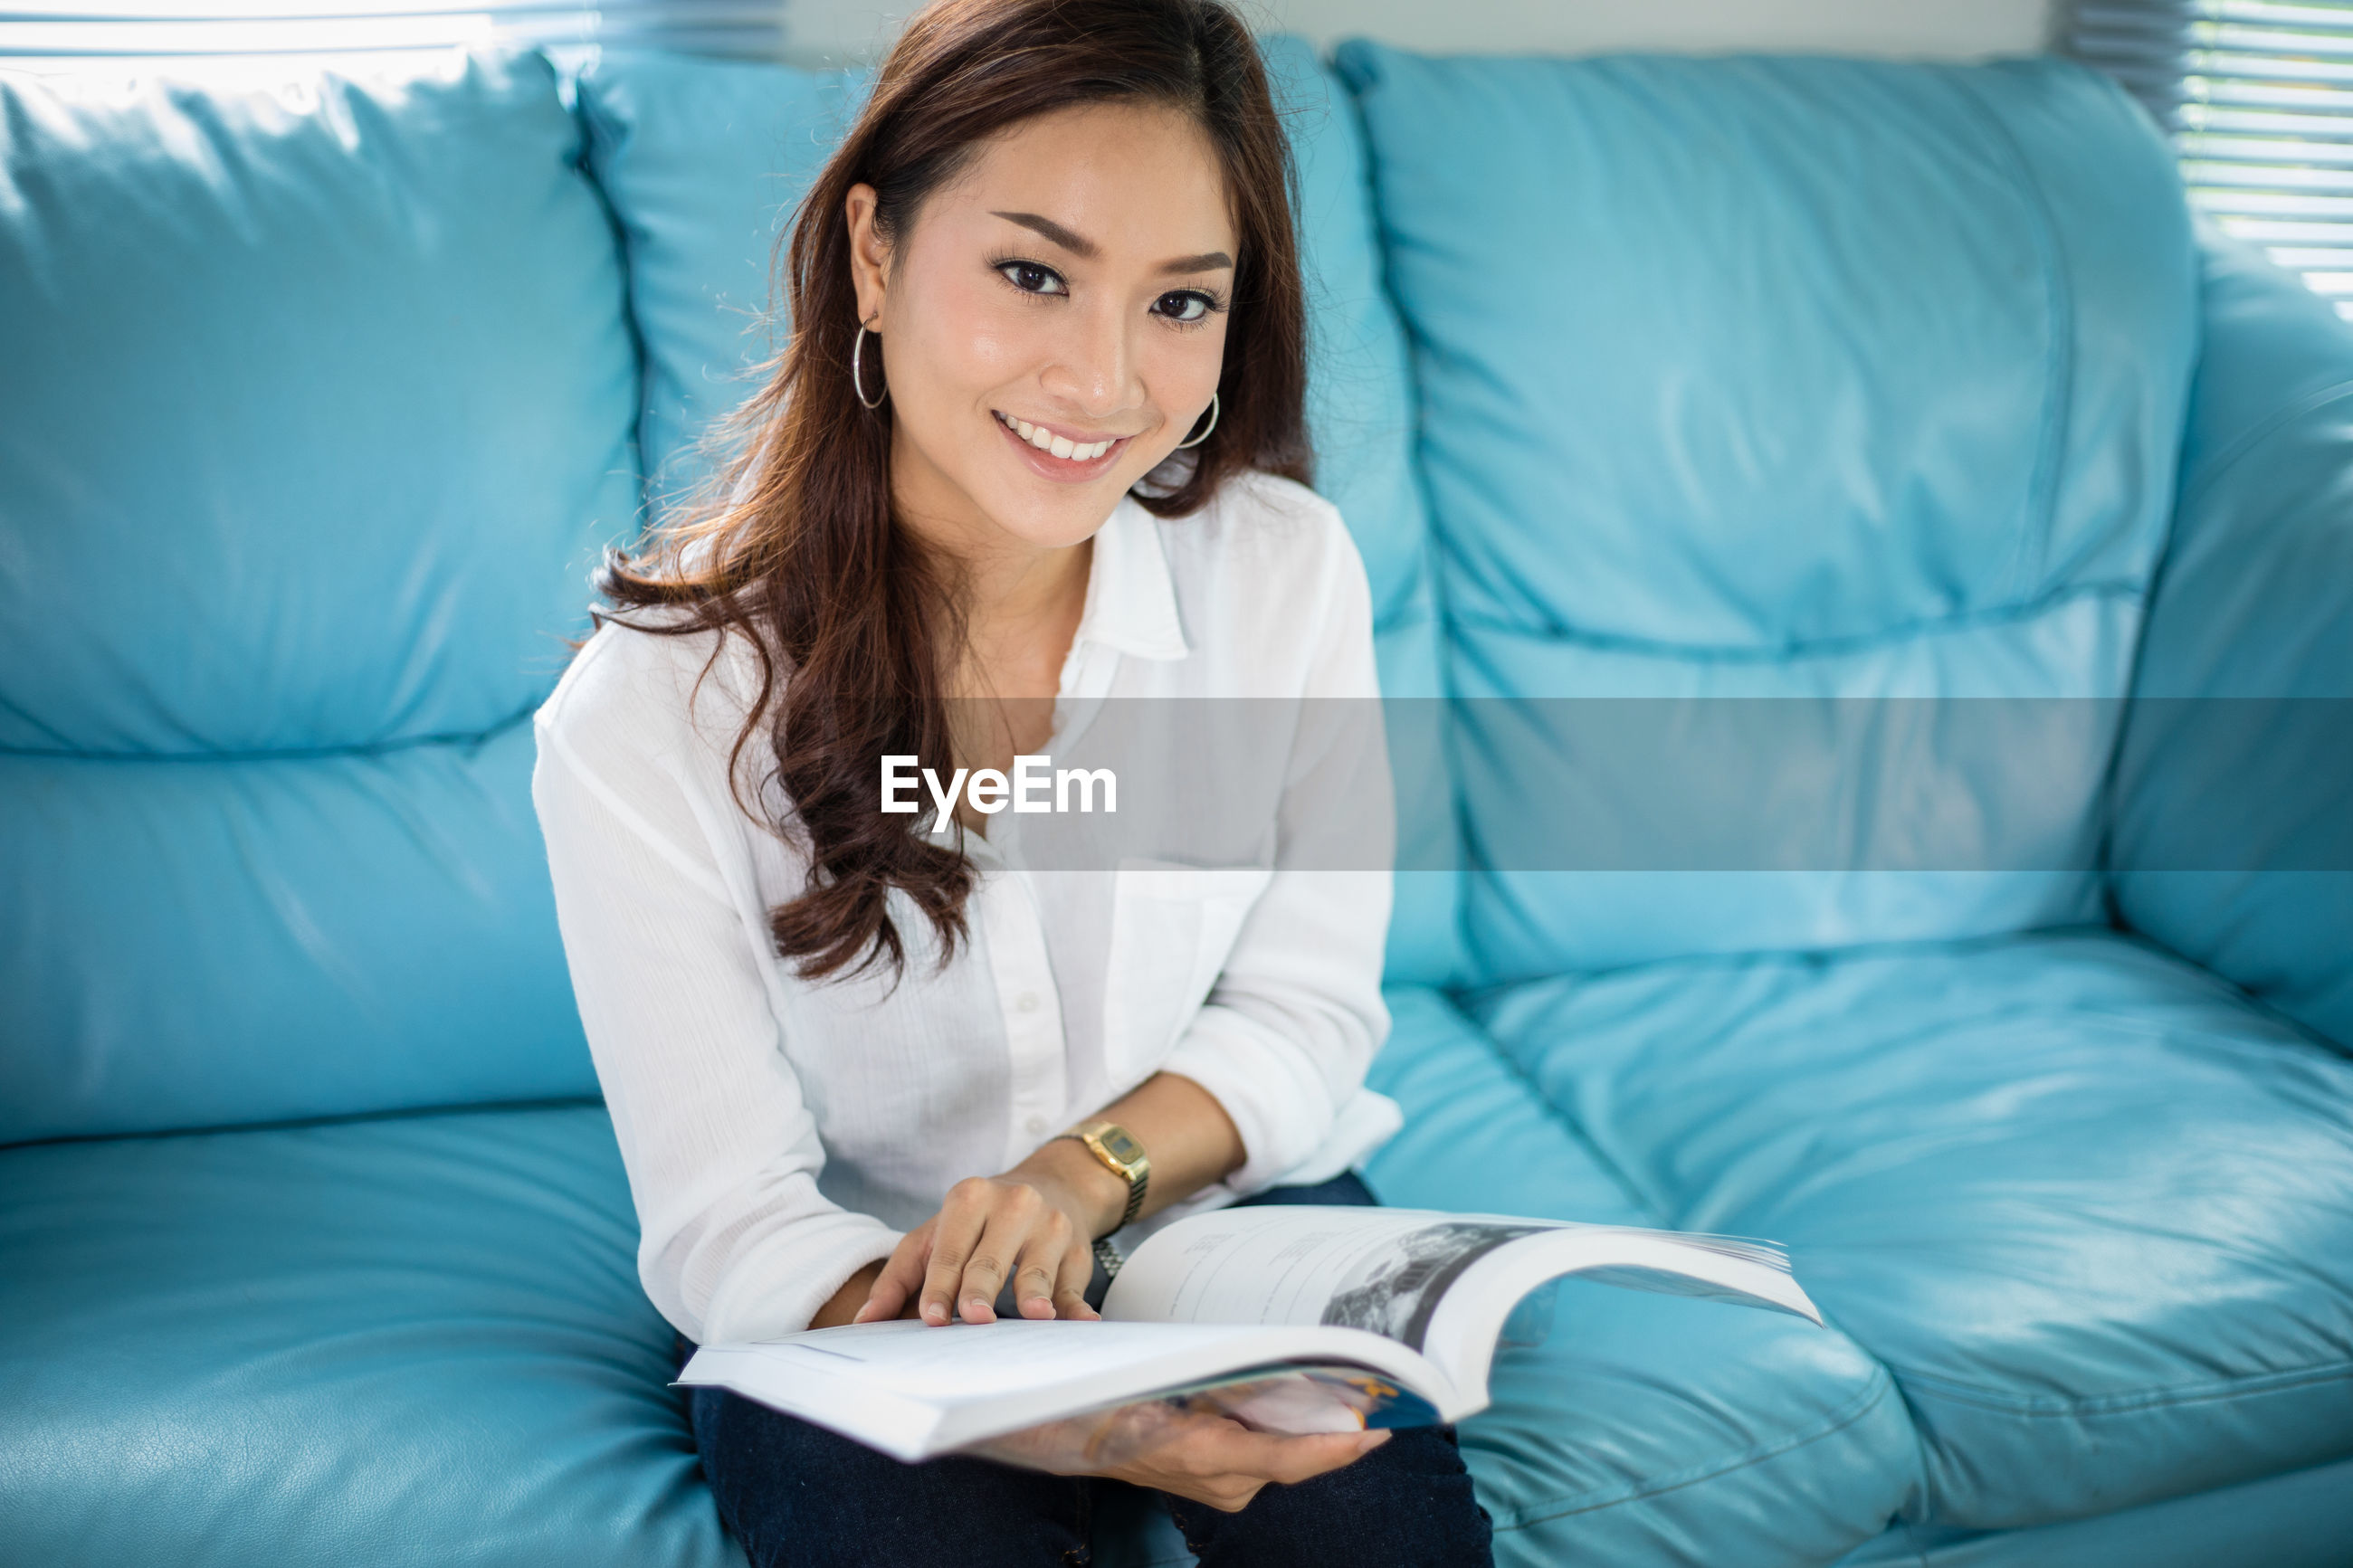 Asian women smiling and reading a book for relaxation on sofa at home